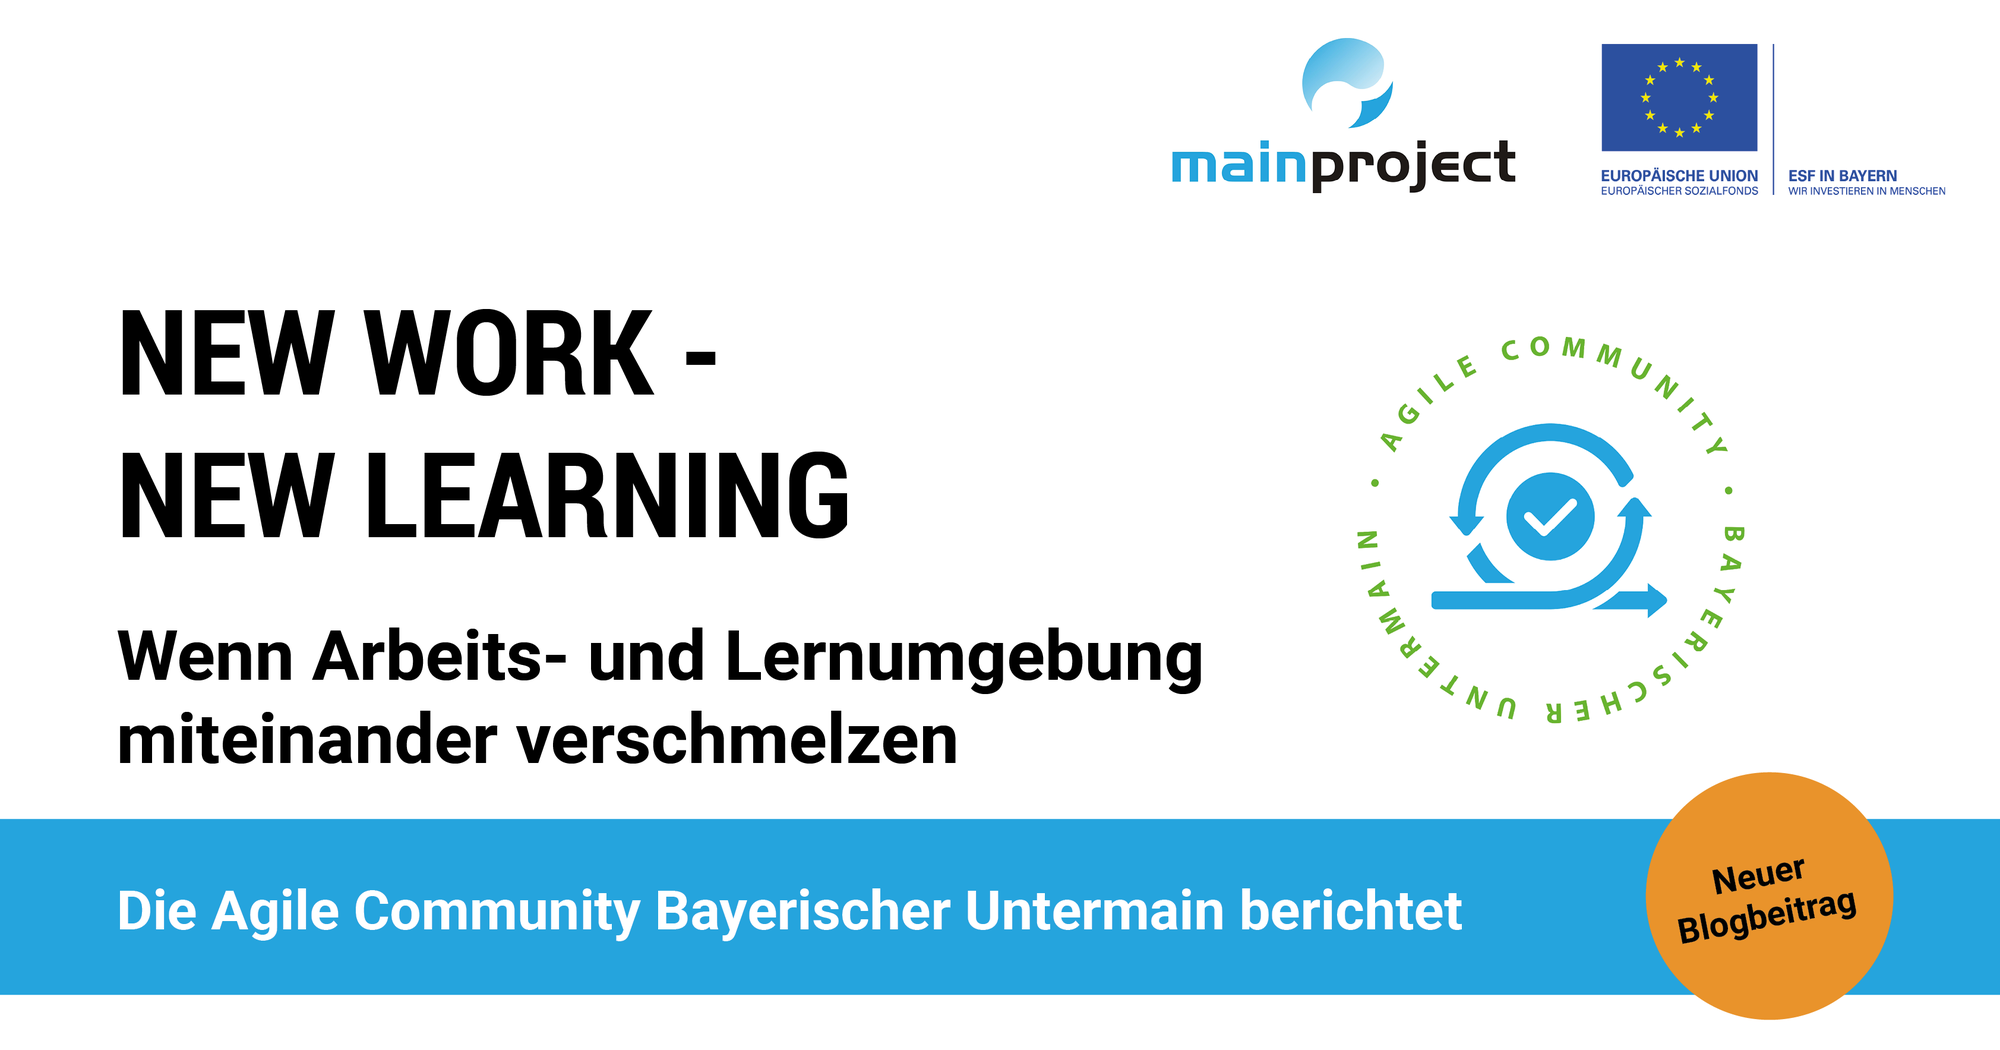 New Work und New Learning